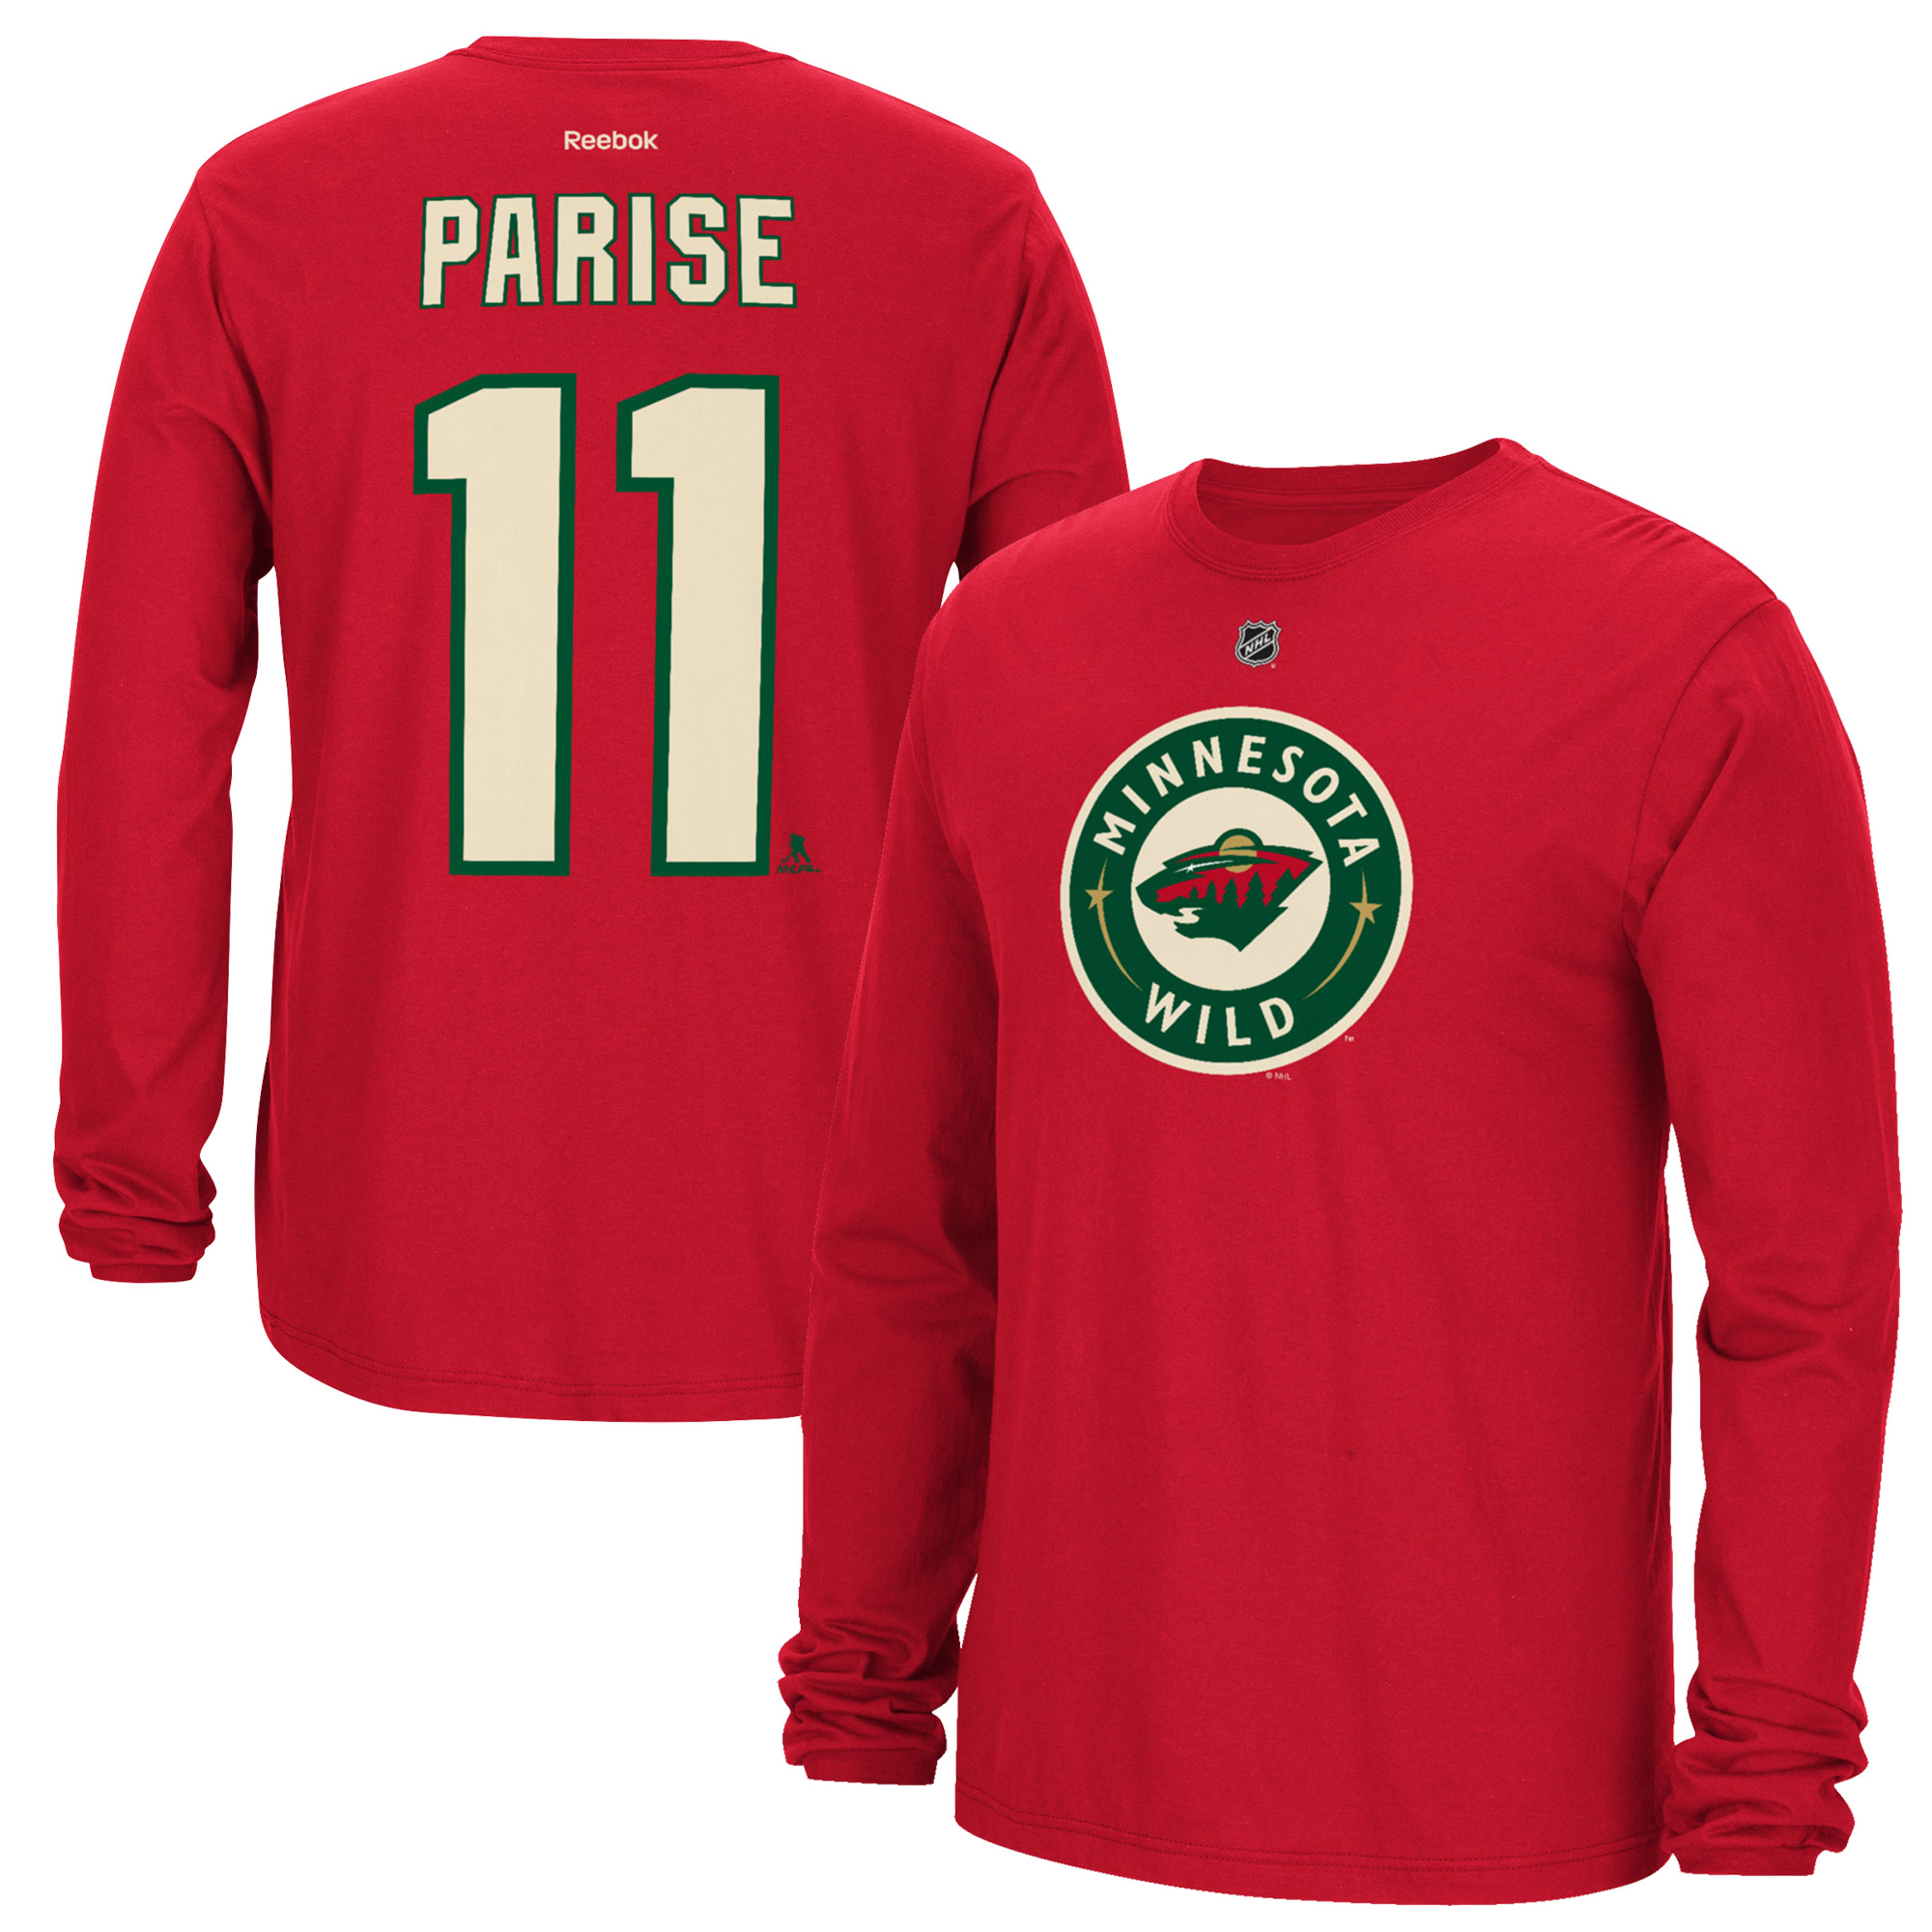 Zach Parise Minnesota Wild Reebok Name & Number Long Sleeve T-Shirt - Red